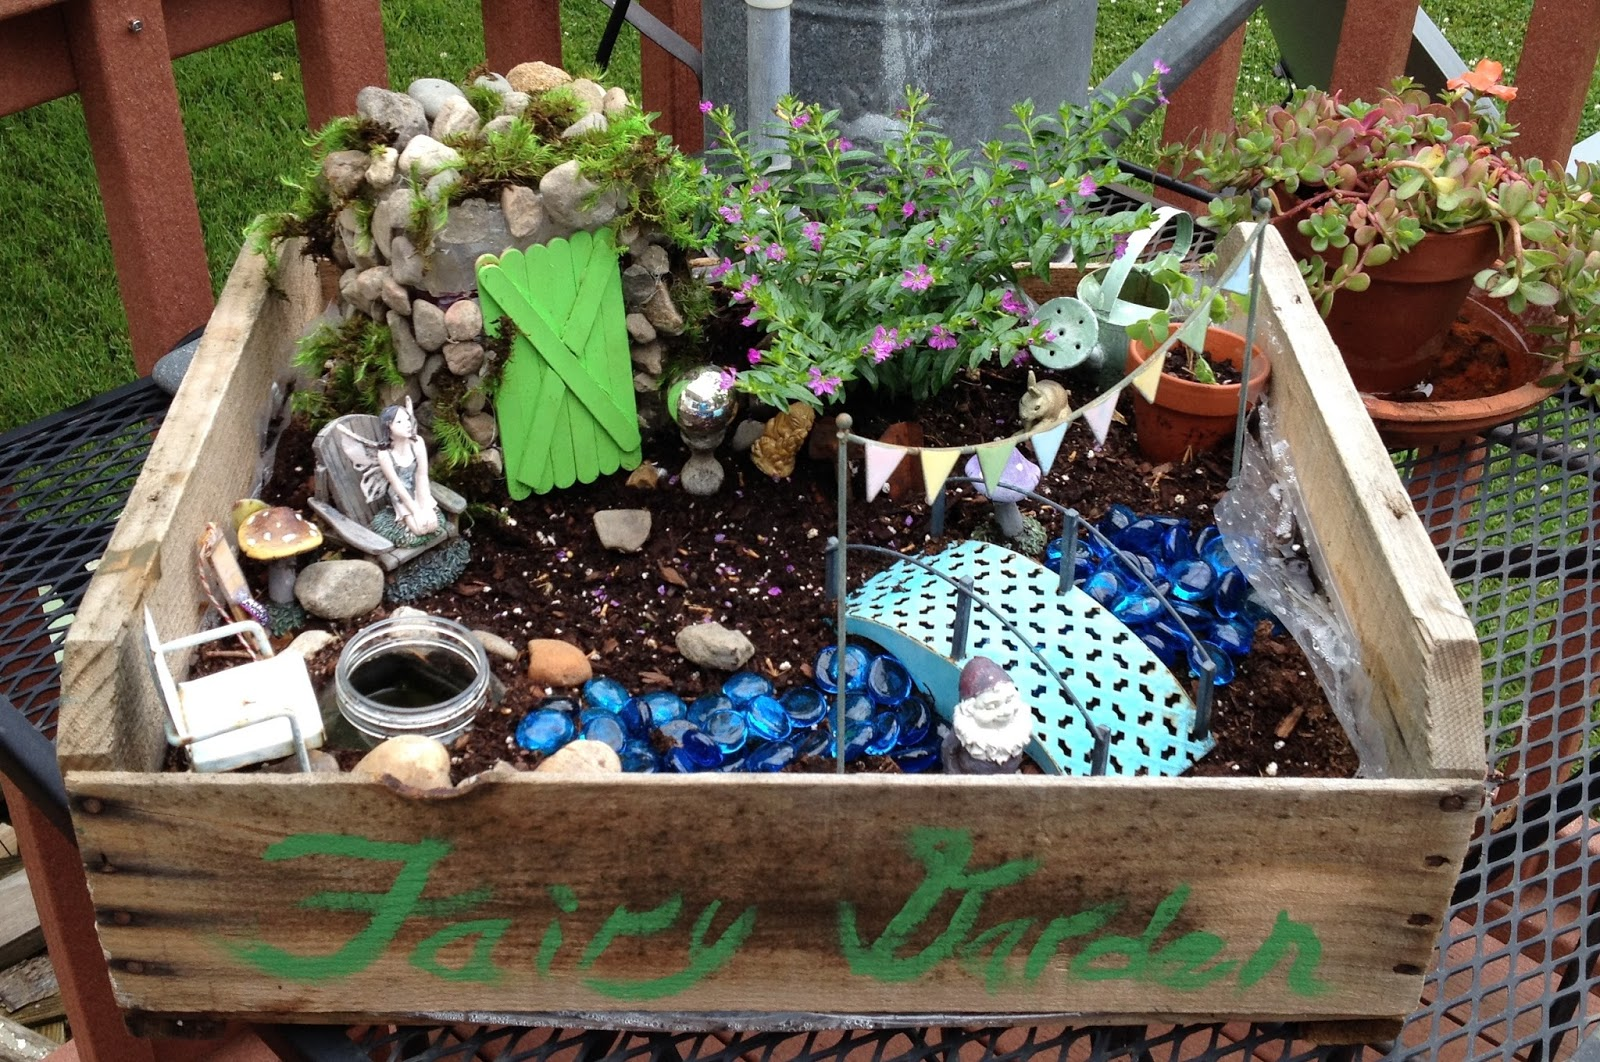 My granddaughter and I made a new fairy garden this year in a smaller  container.